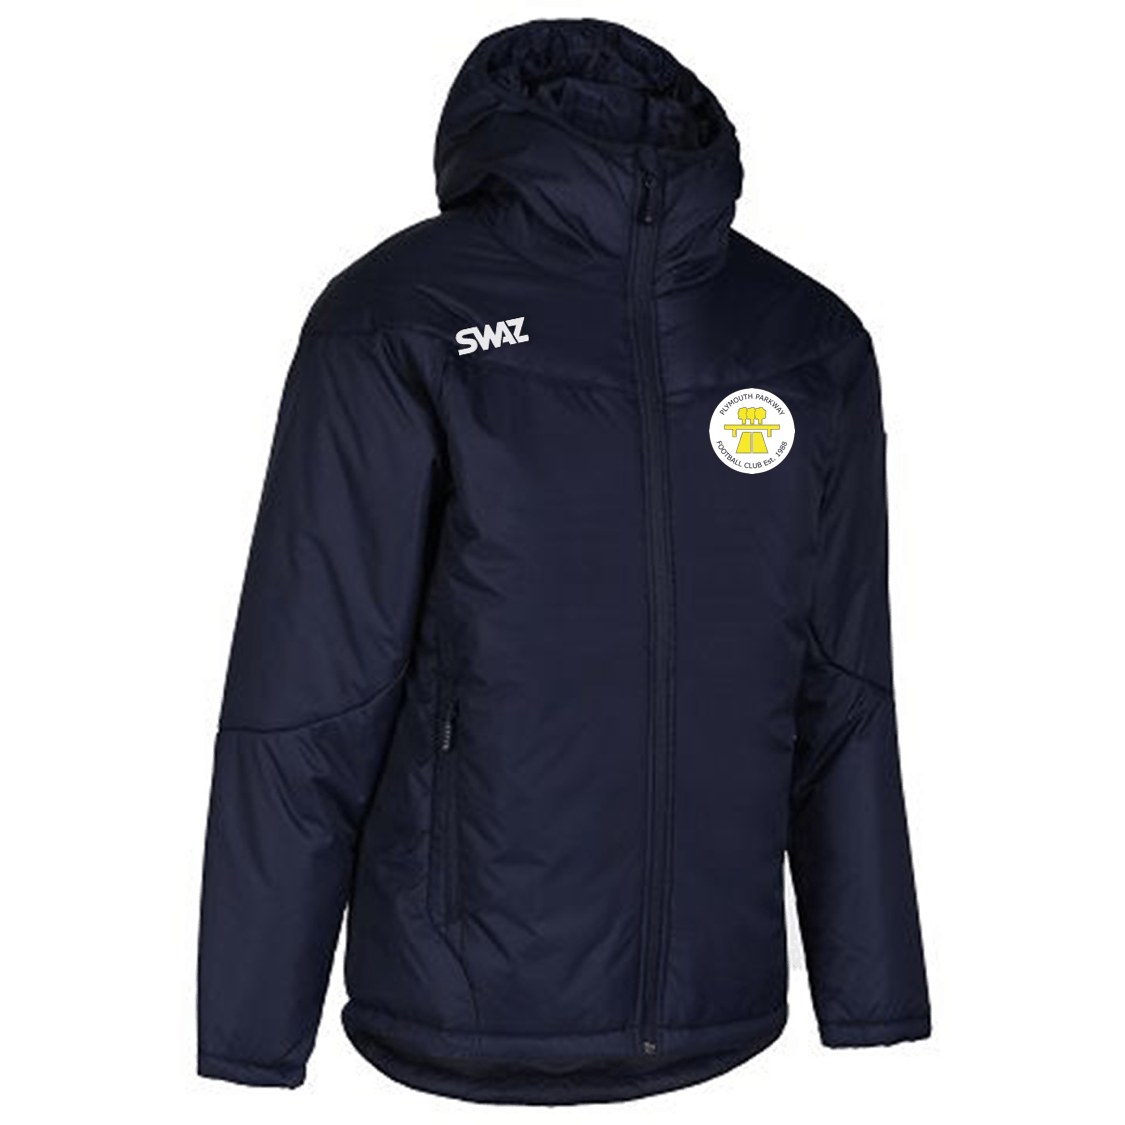 Plymouth Parkway Manager's Jacket | SWAZ Teamwear |